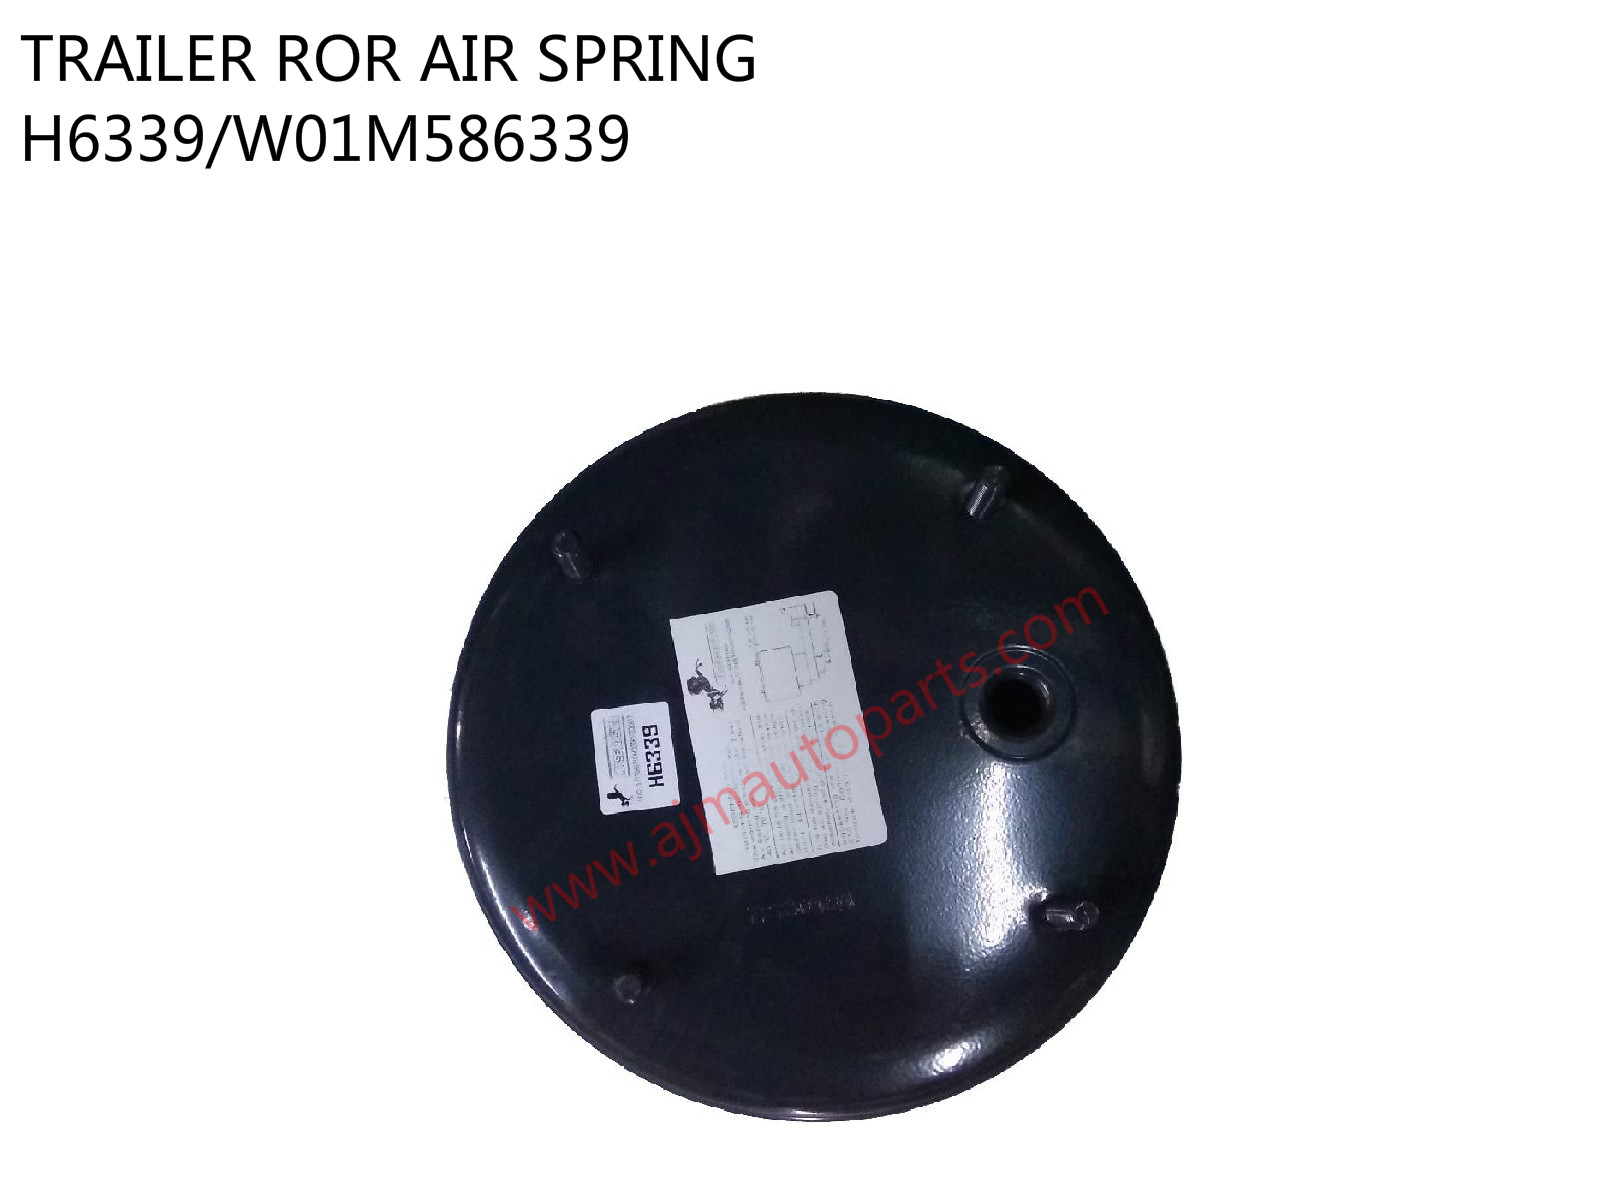 TRAILER-ROR-AIR-SPRING-H6339